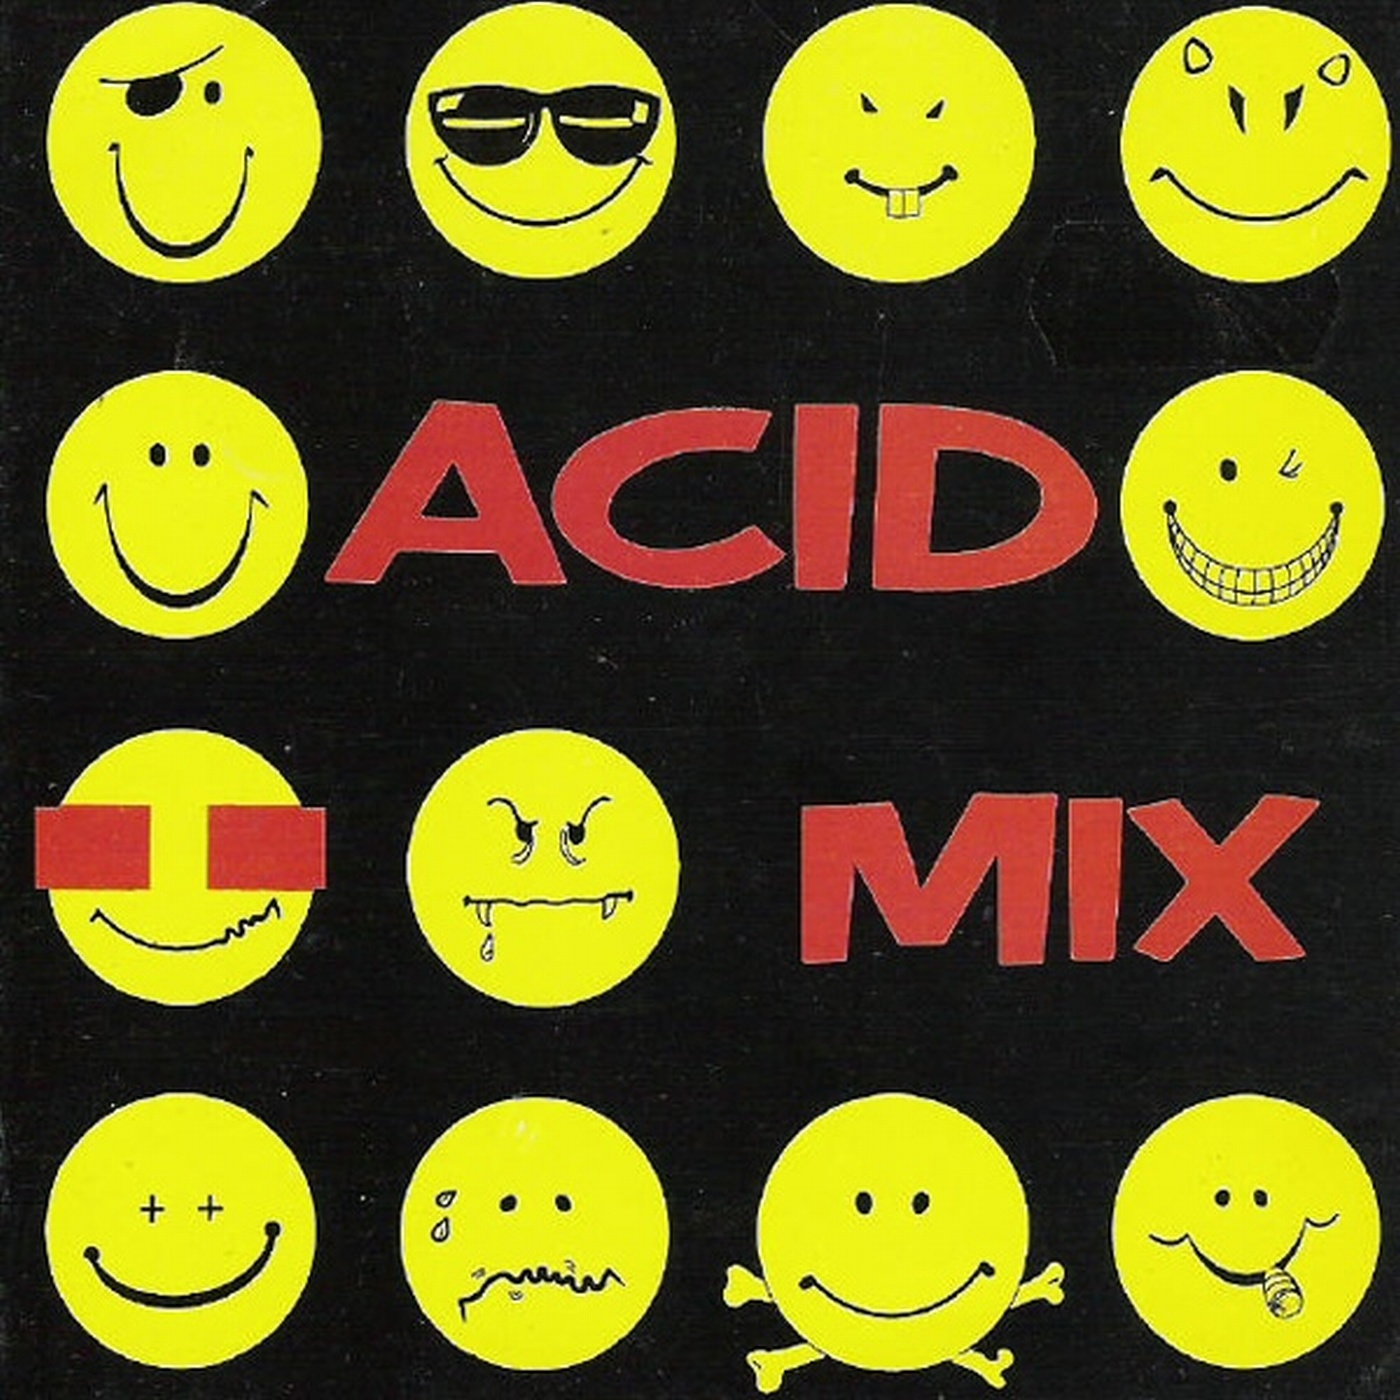 Acid mix cd mixed 1989 dance vinilo cd for Dance music 1989